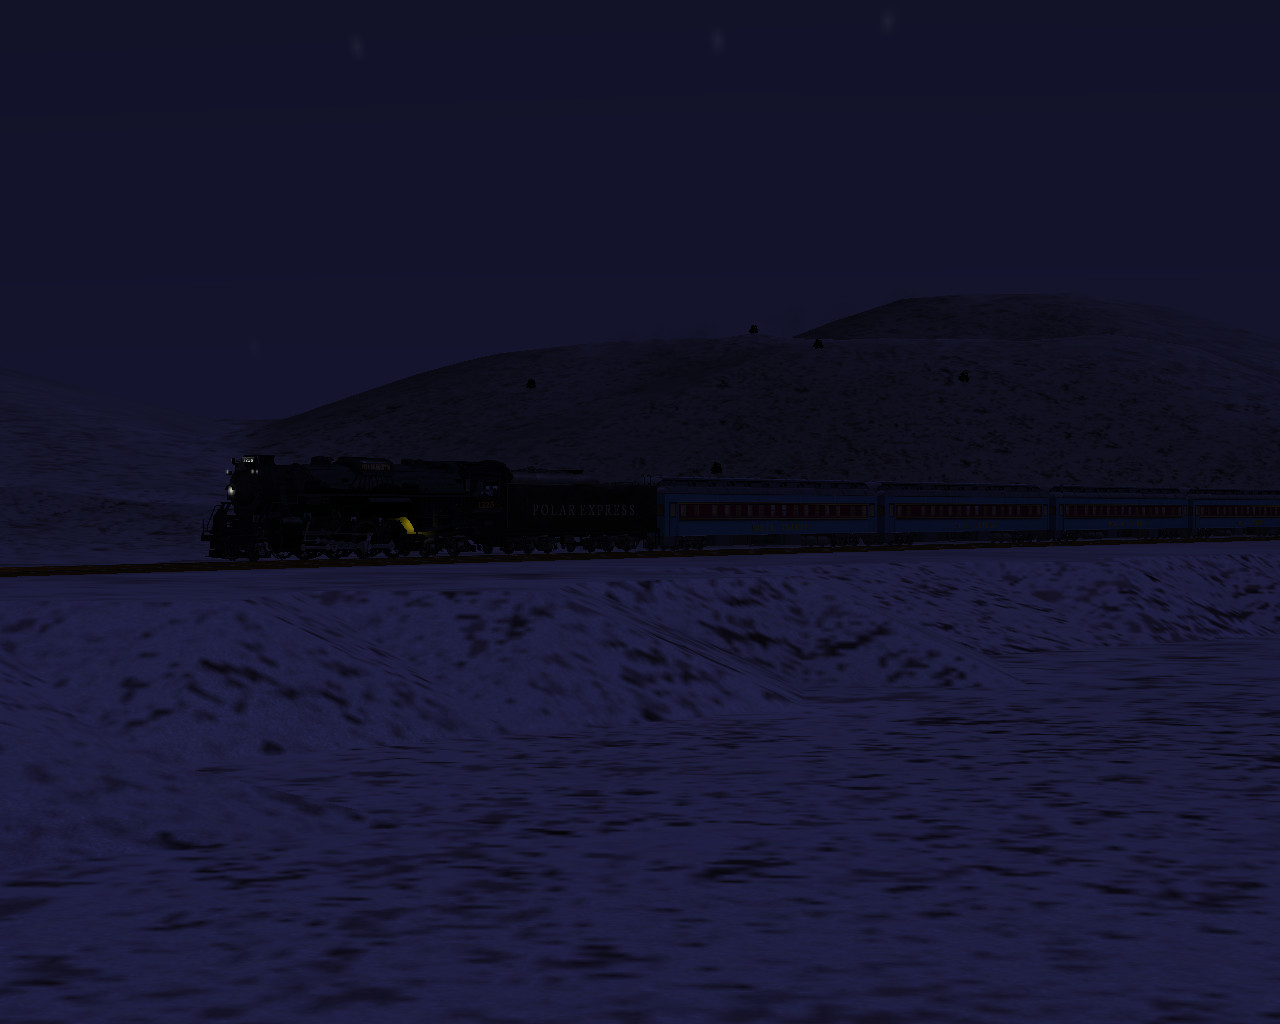 Wallpaper download free image search 3d - Msts Polar Express By 736berkshire On Deviantart